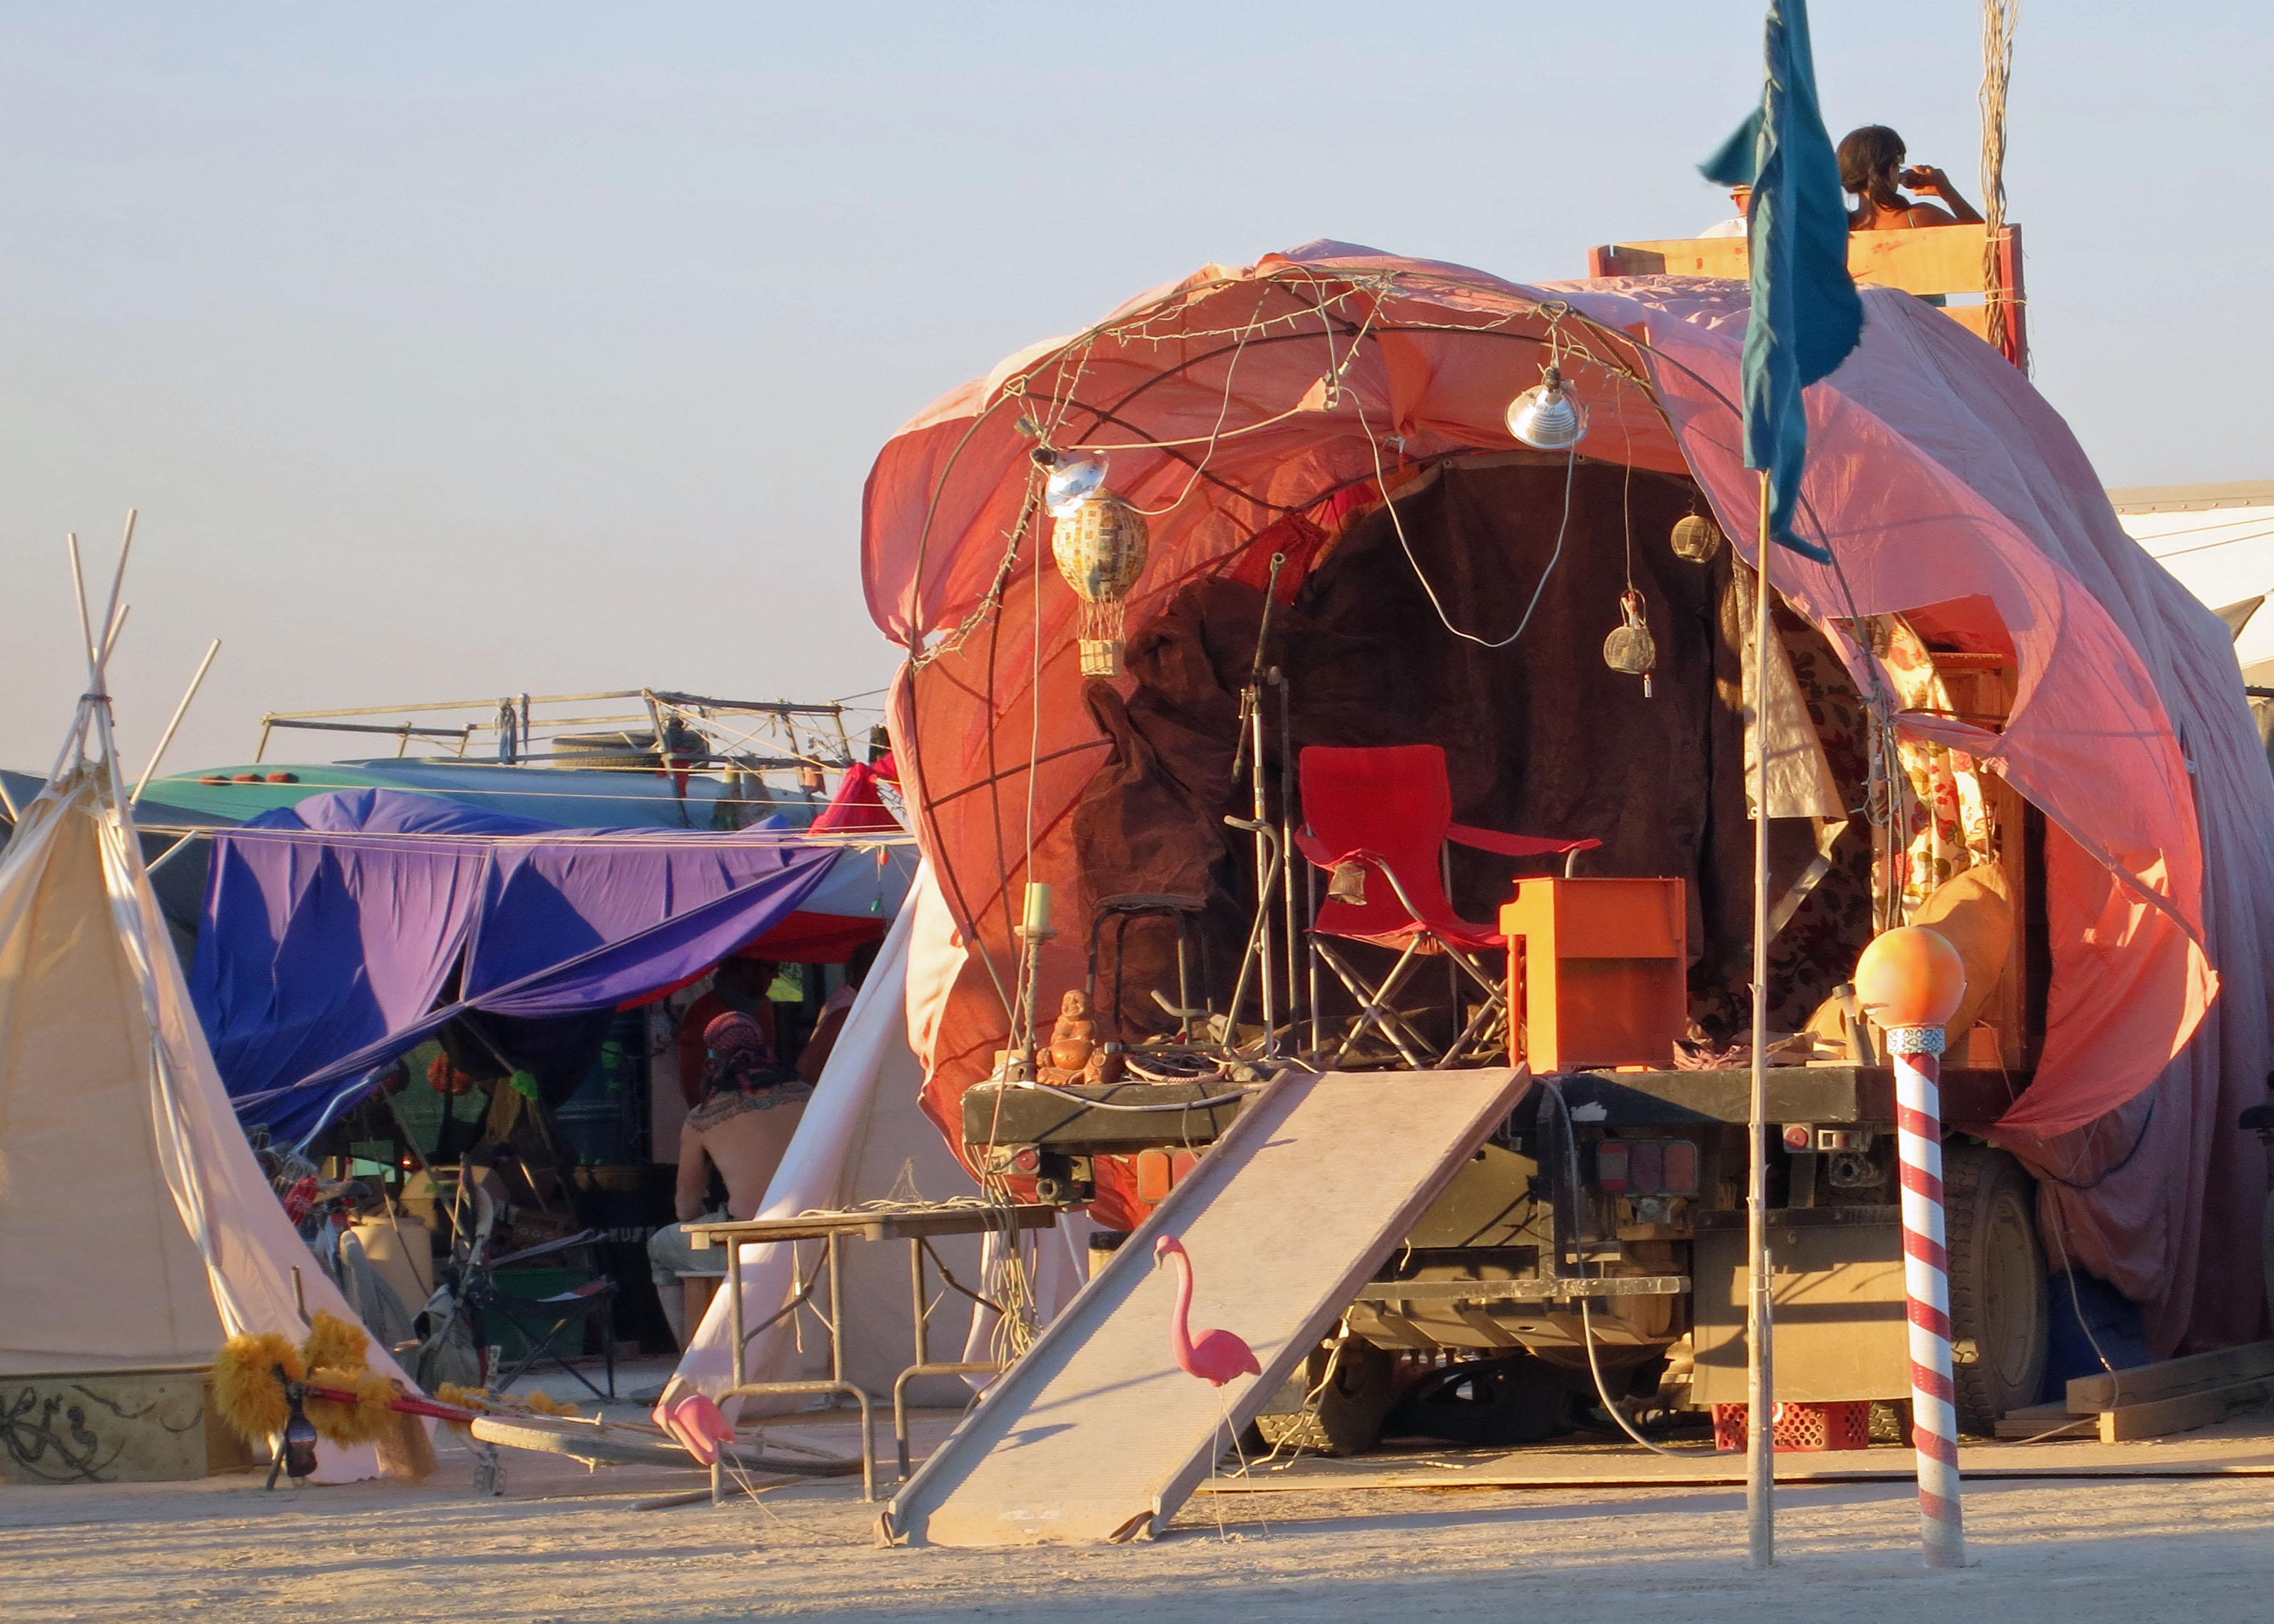 The gypsy tent directly across the road from us at 550 and Foxglove on the inner circle at Burning Man 2012. & Light House Burn at Burning Man | Wandering through Time and Place